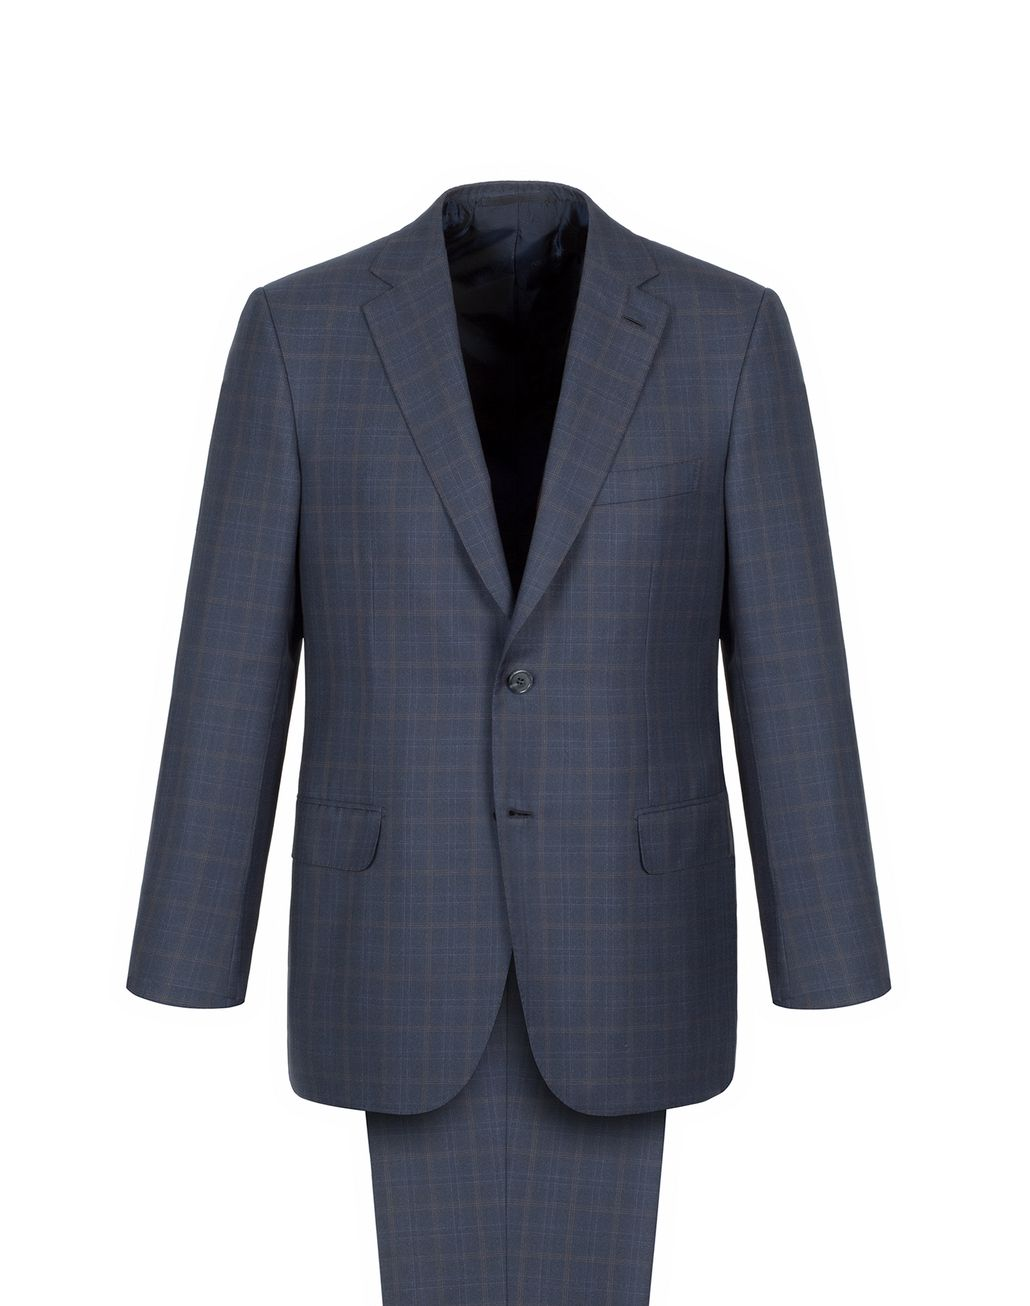 BRIONI Navy-Blue Subtle Check Brunico Suit Suits & Jackets Man f